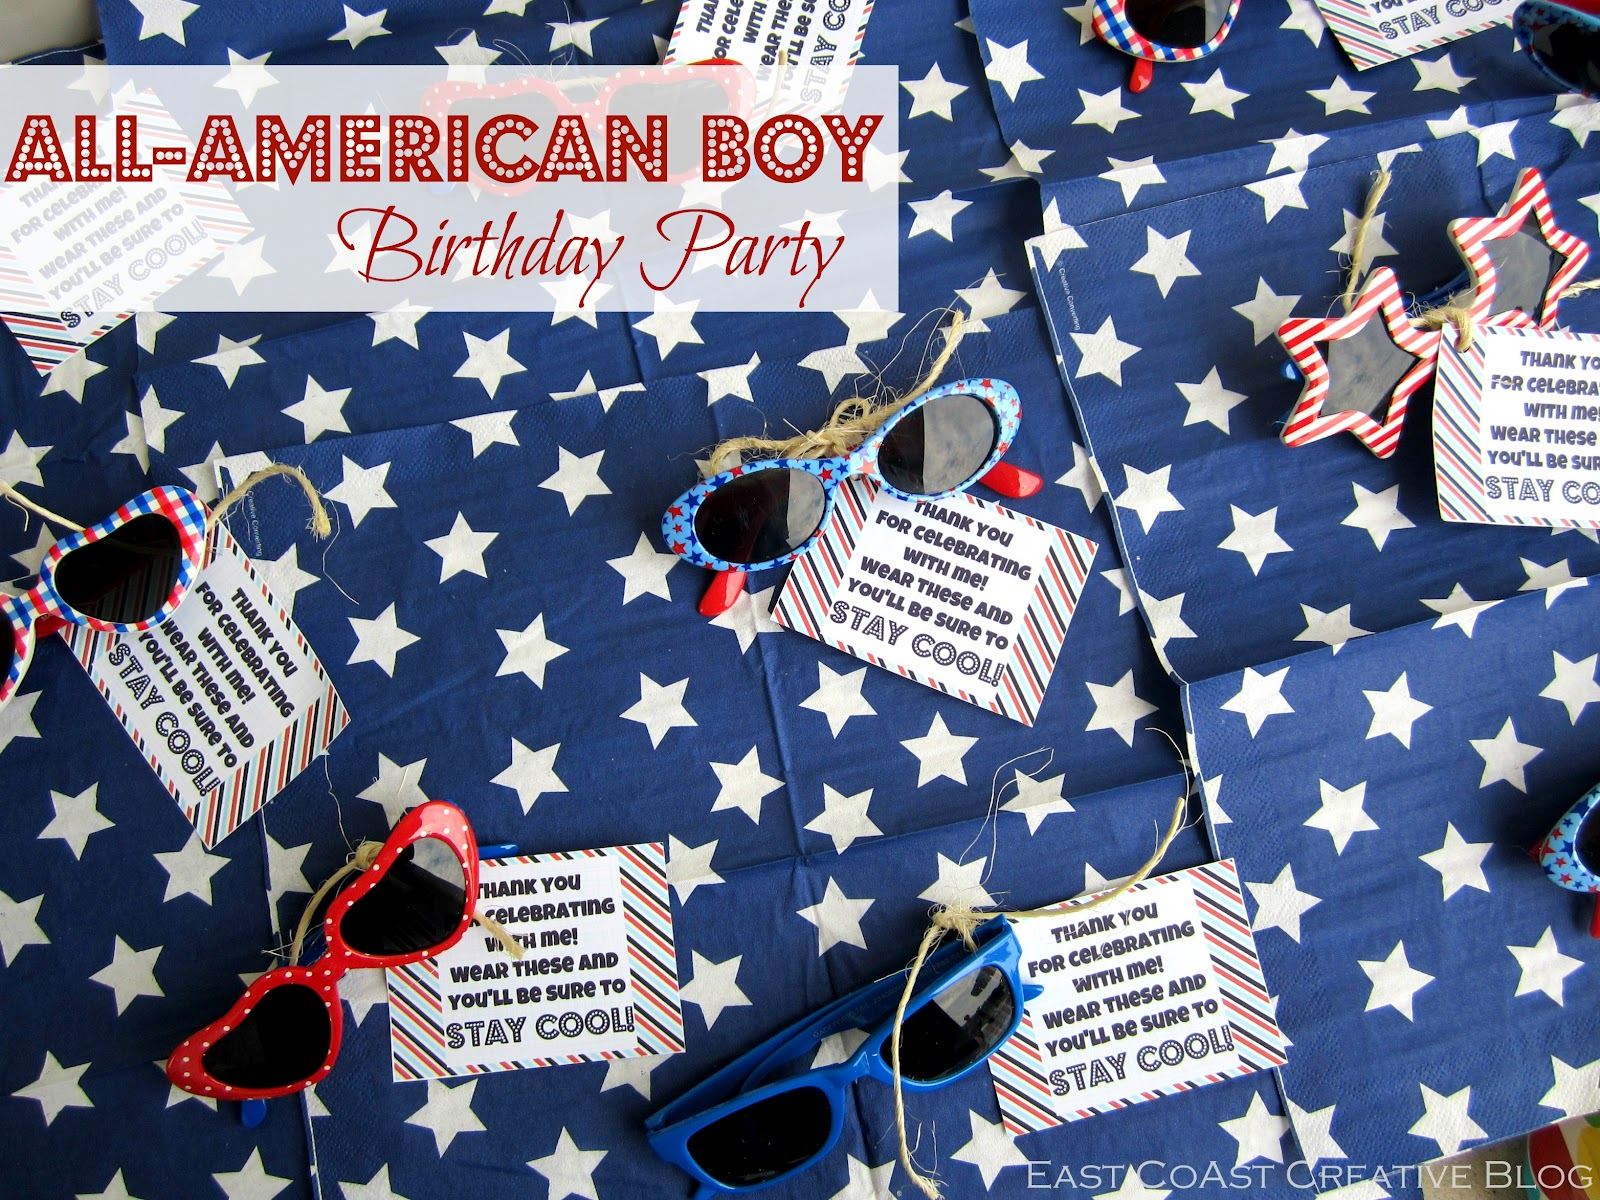 All American Boy Birthday Party